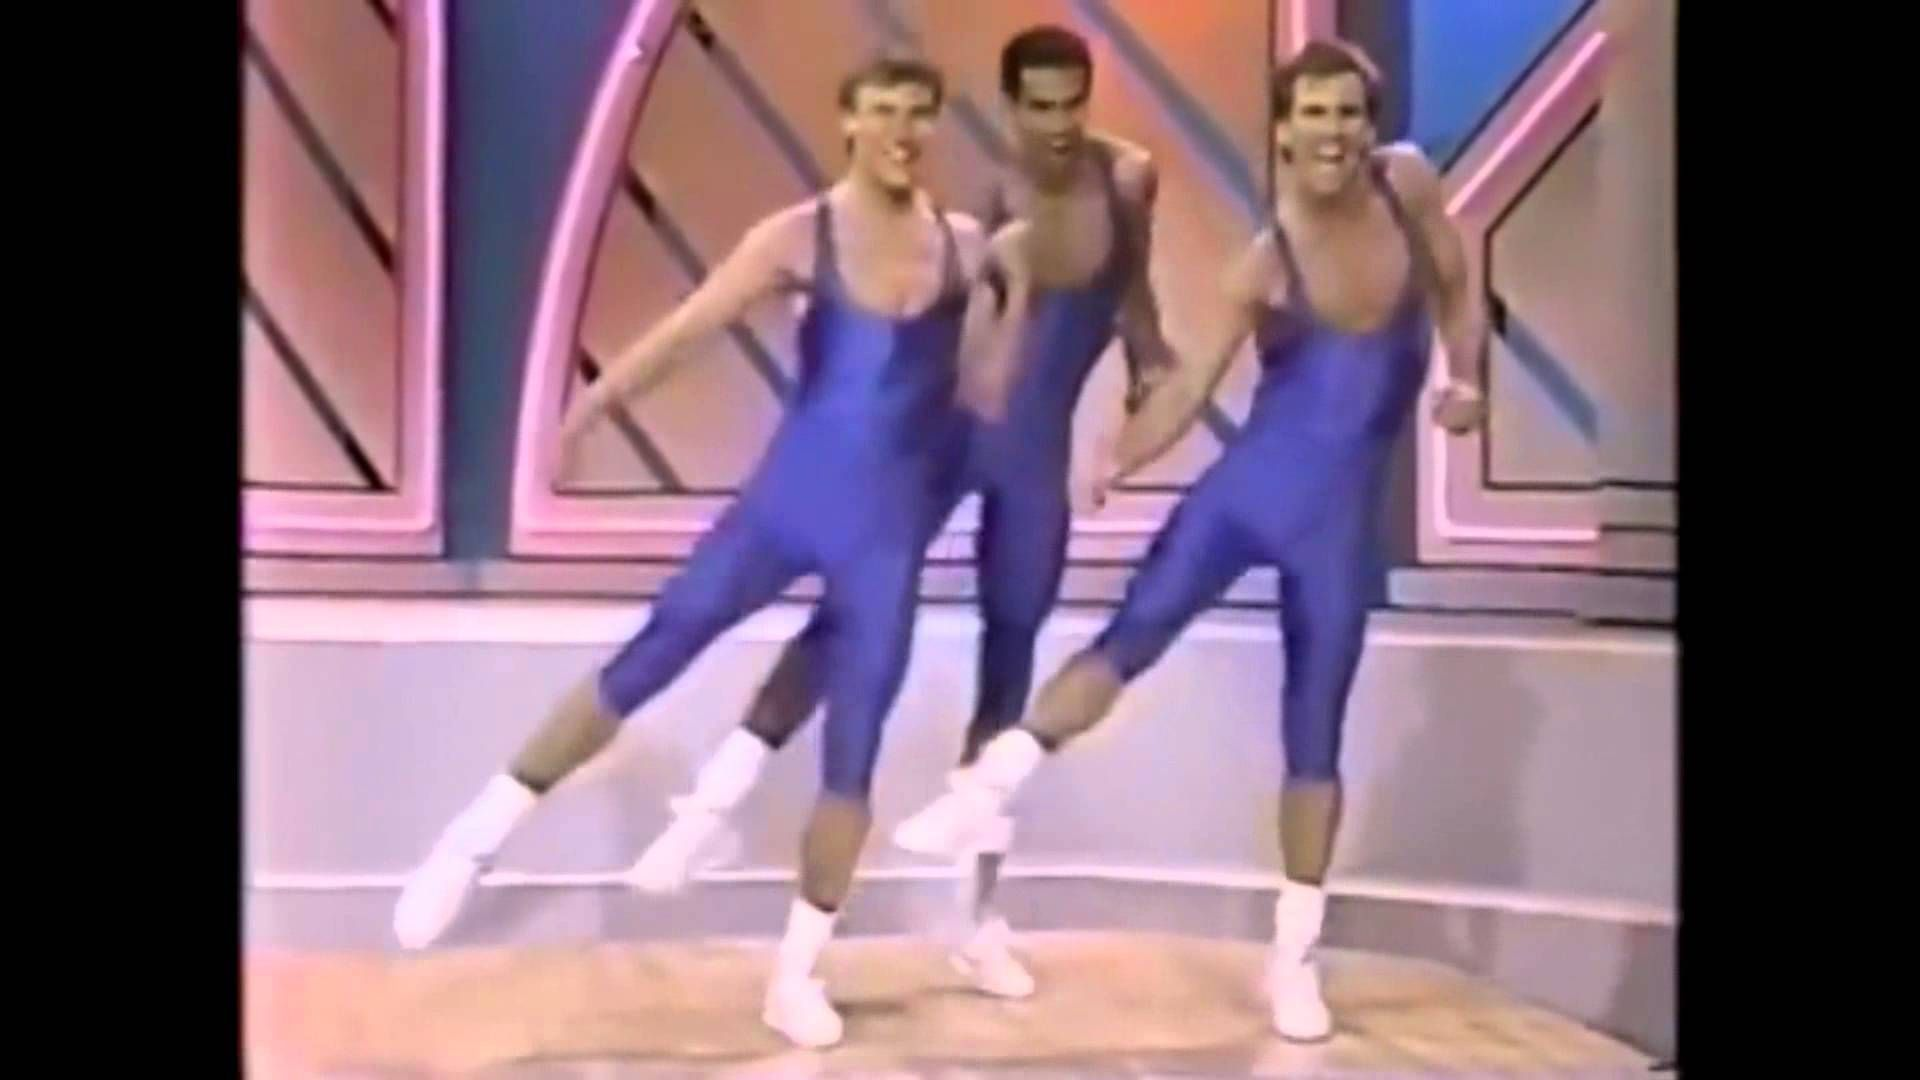 Taylor Swift Shake it Off 1988 Aerobics - YouTube